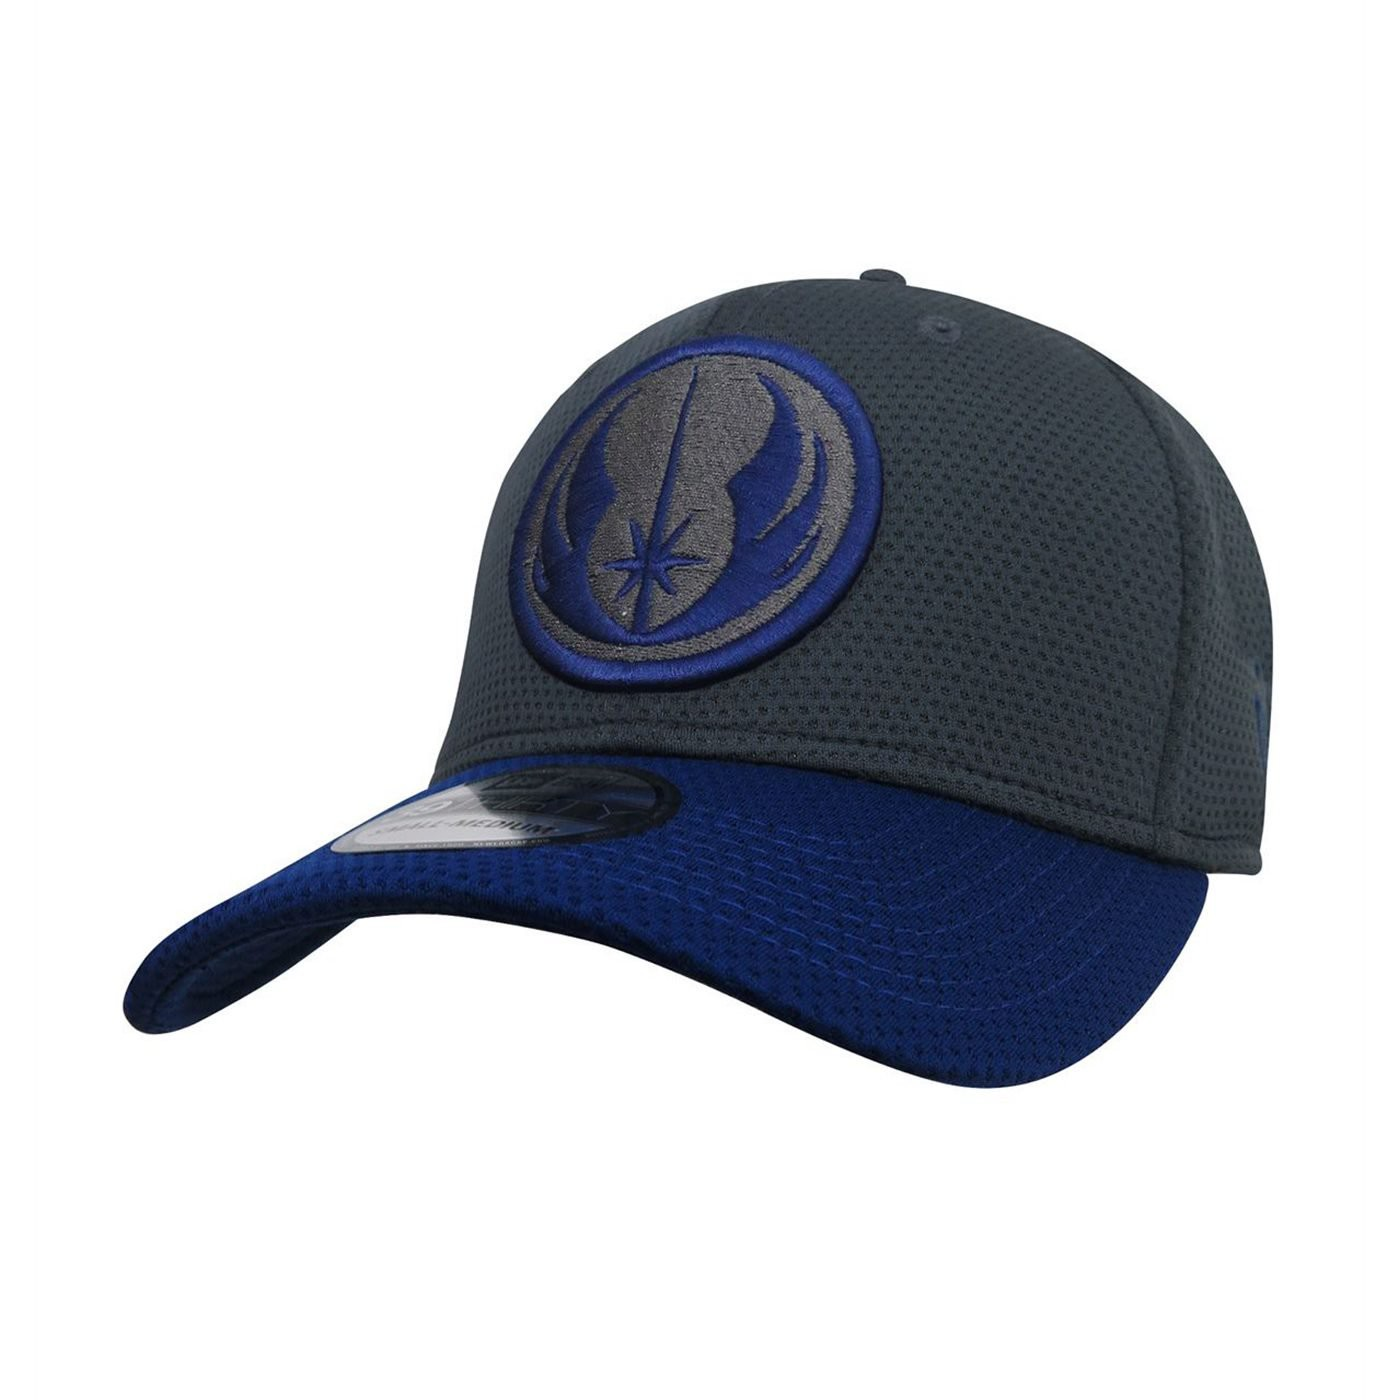 Star Wars Jedi Order Symbol 39Thirty Fitted Hat